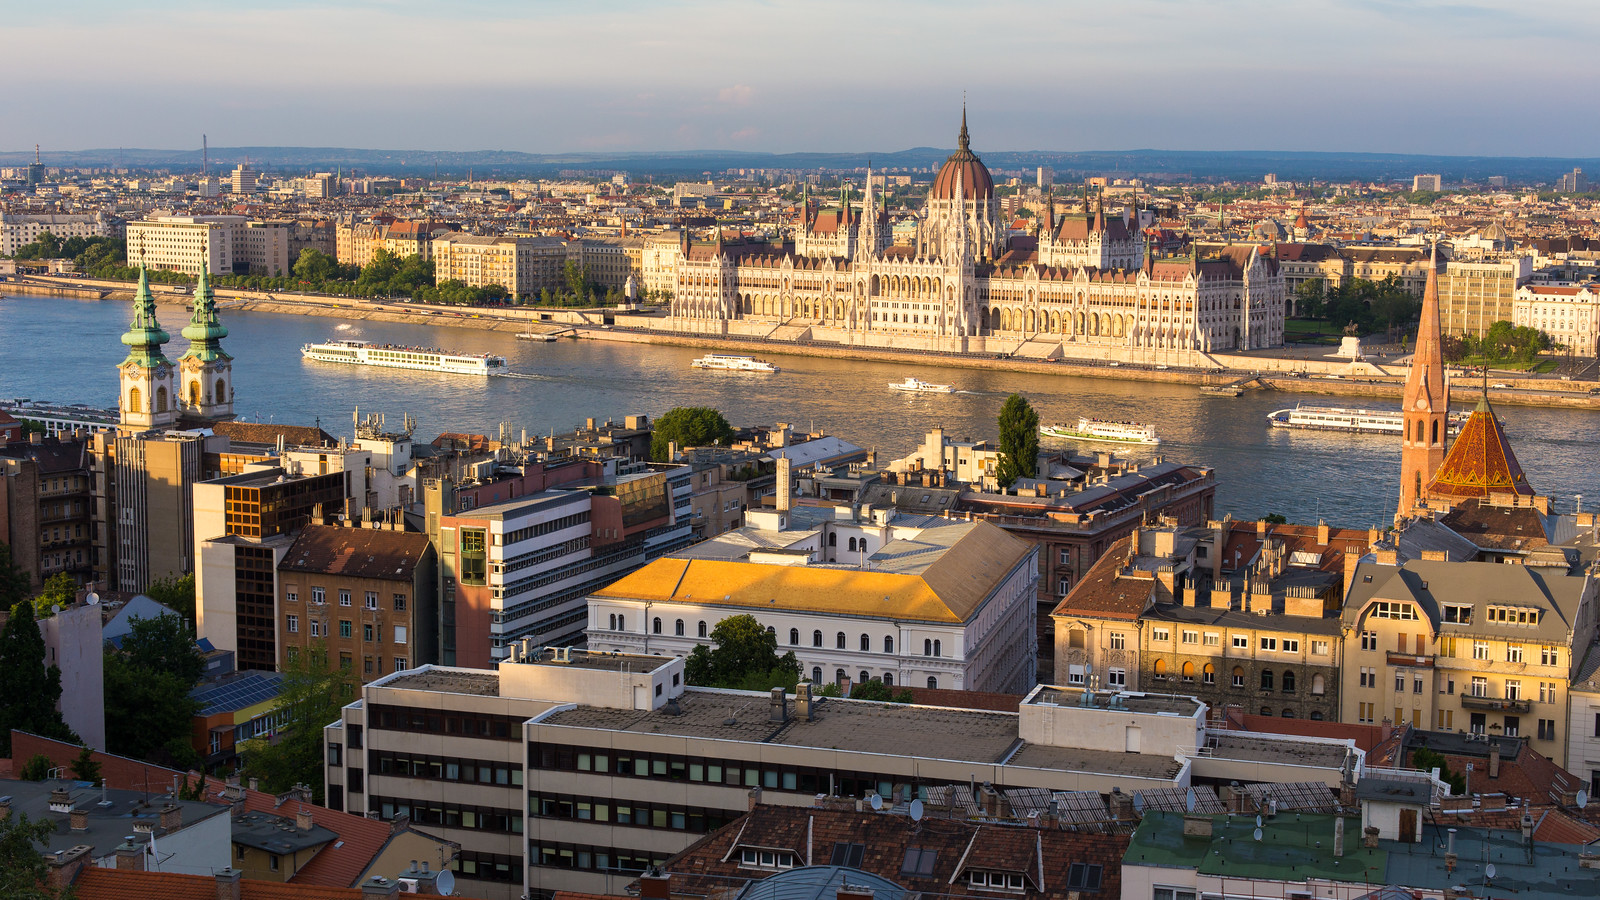 View from Fishermens Bastion to Hungarian Parliament